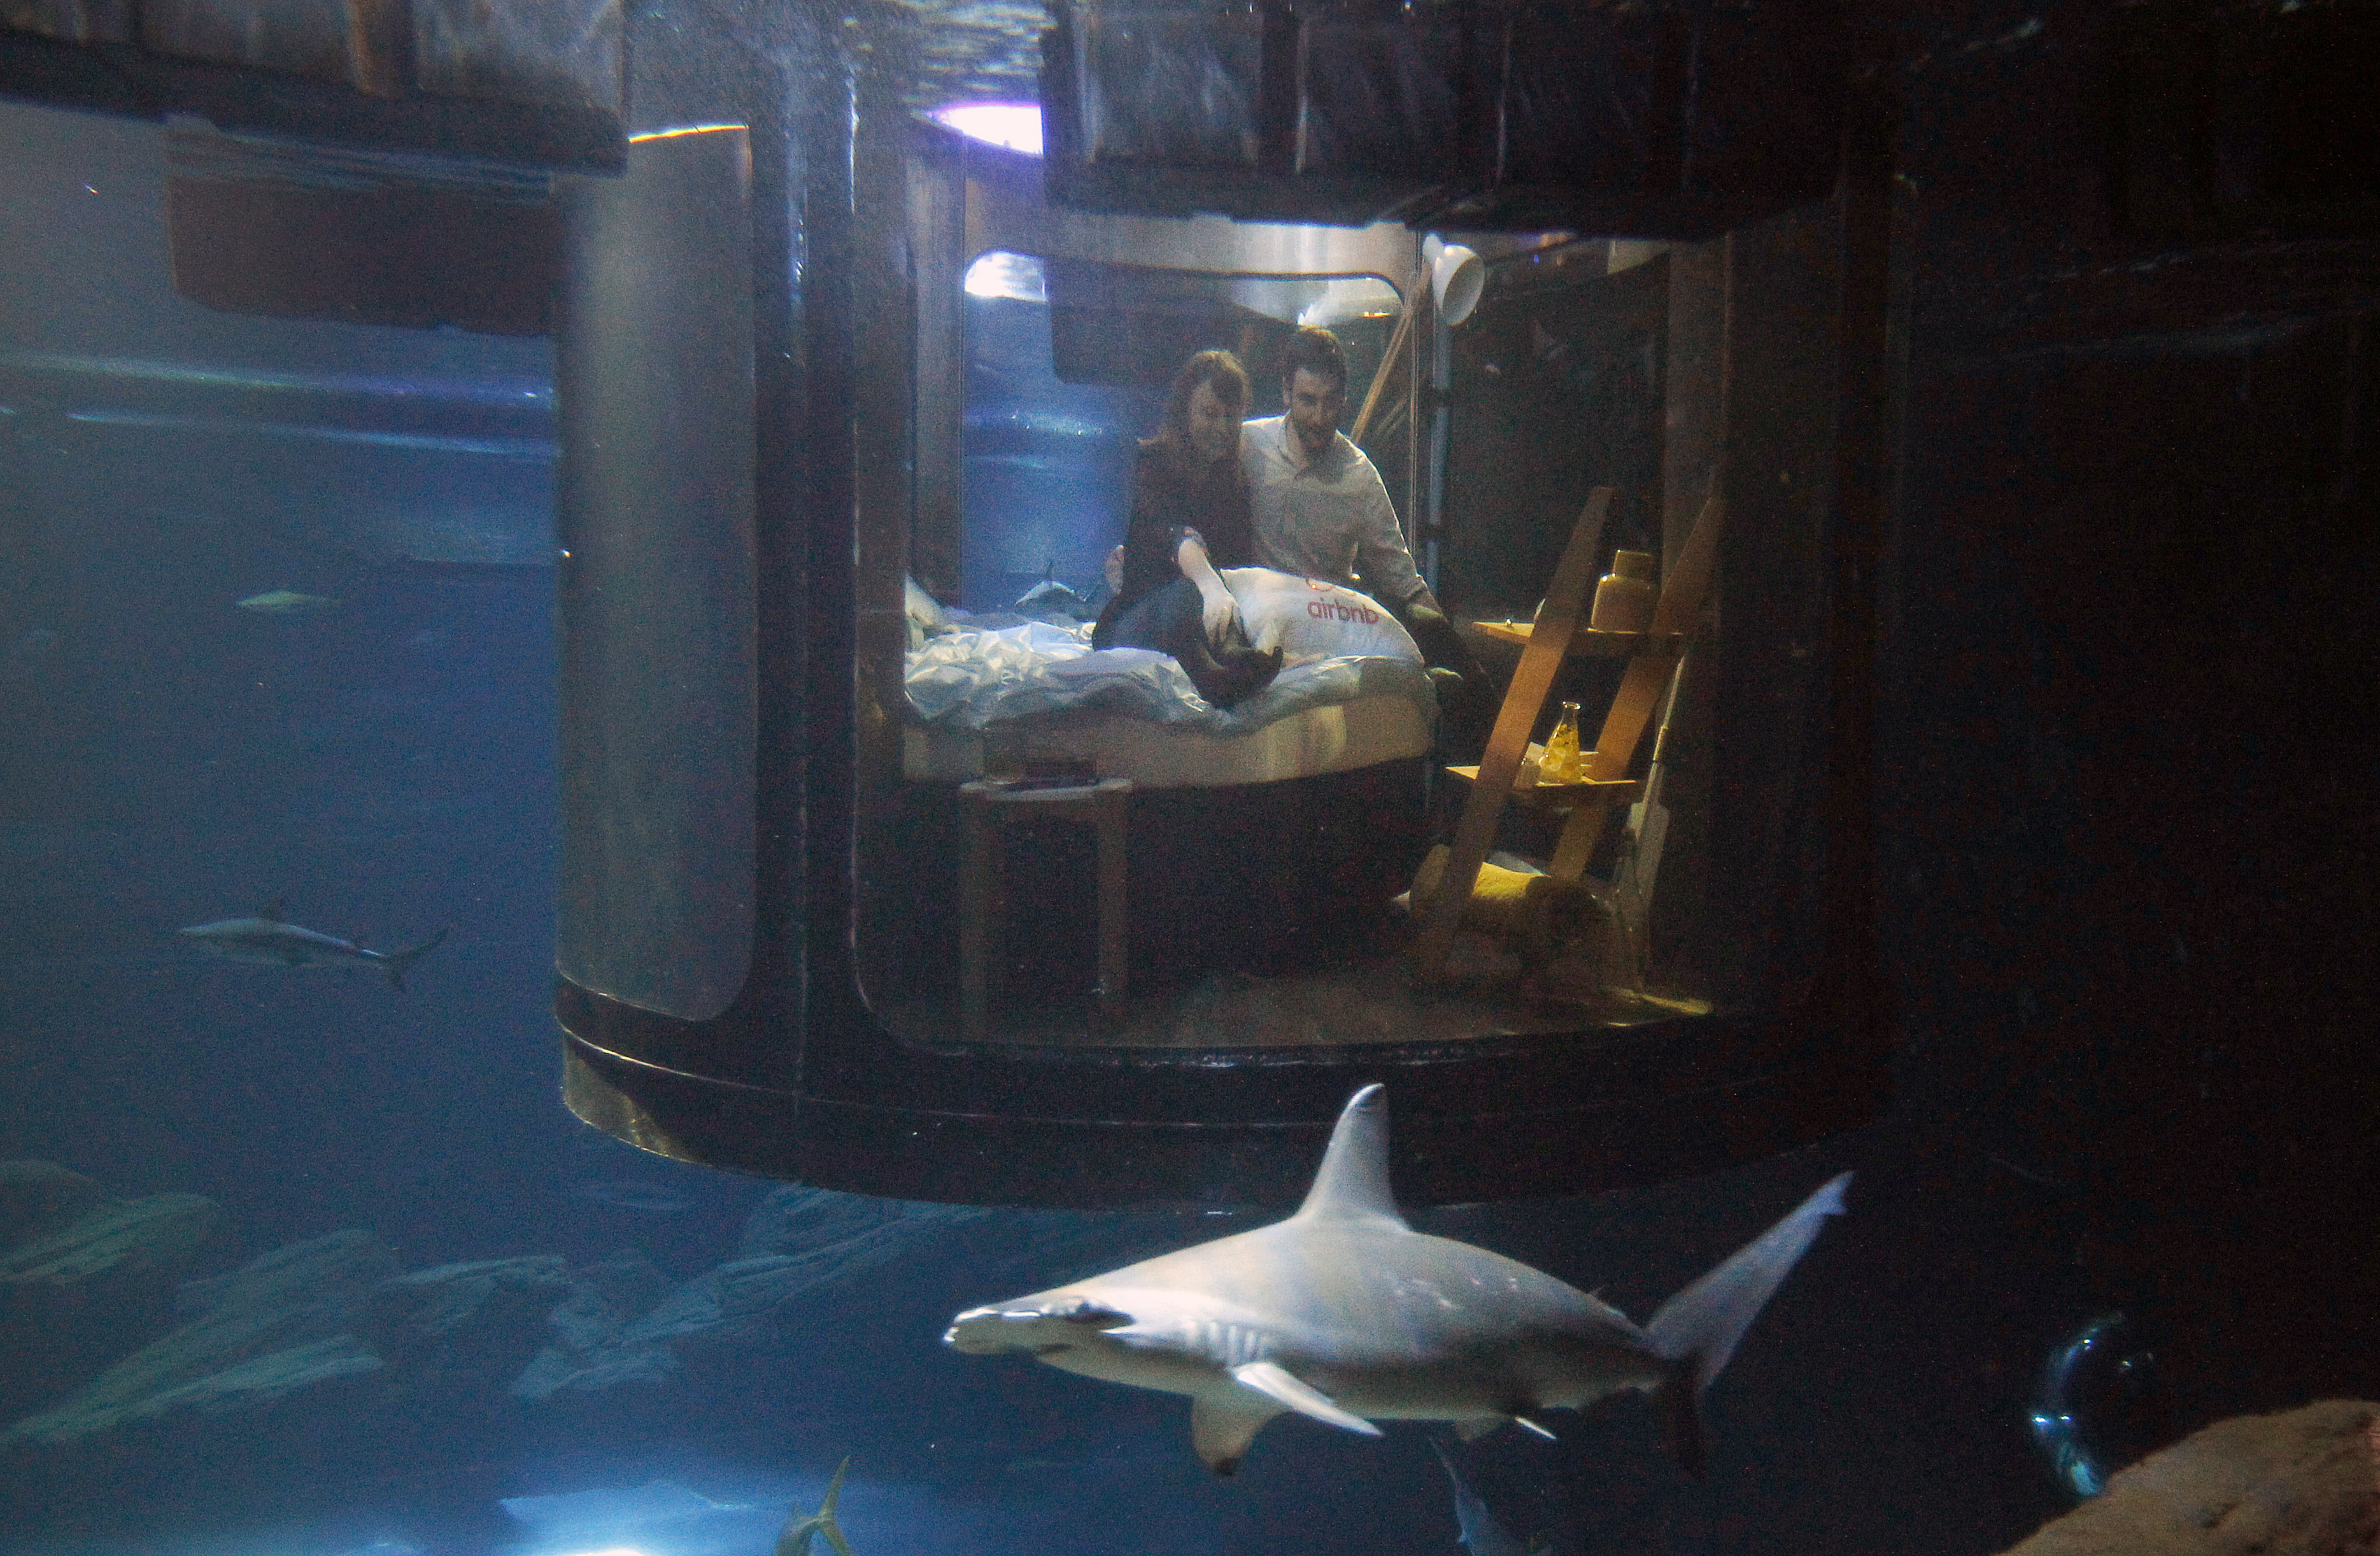 Alister Shipman, right, and Hannah Simpson, winners of an Airbnb competition, pose in a bed of an underwater room structure installed in the Aquarium of Paris, on April 11, 2016.